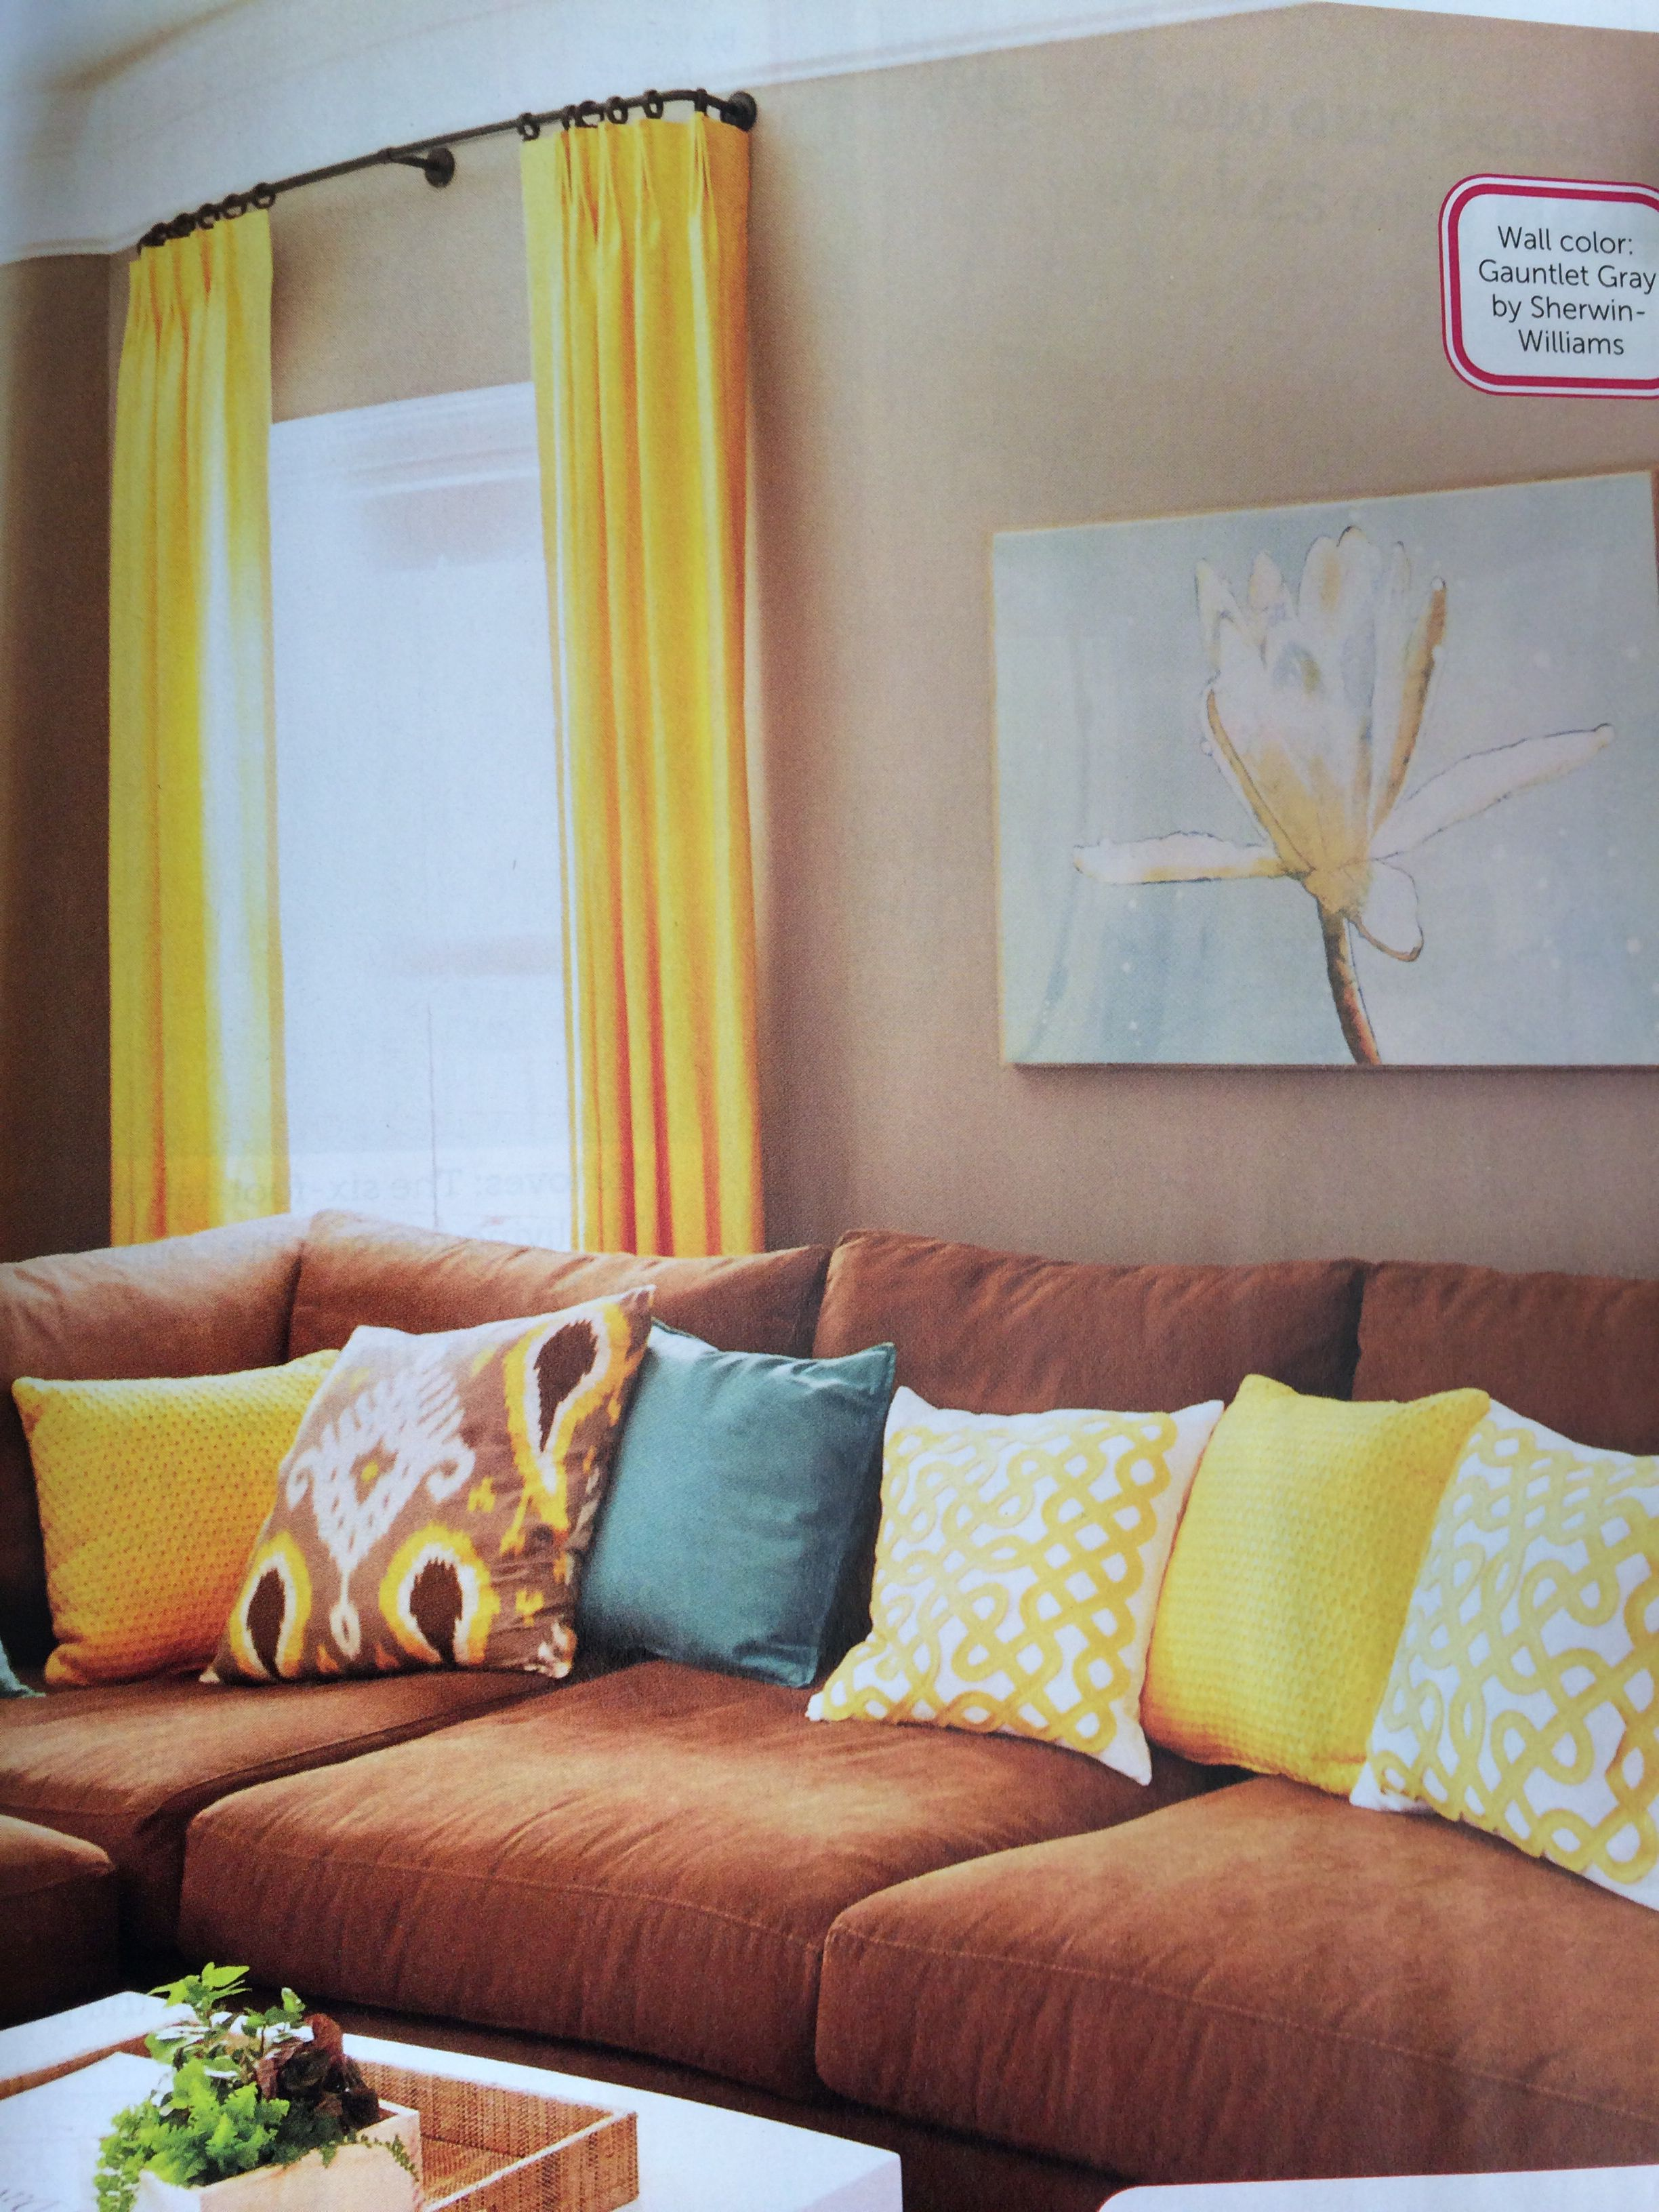 Great Complementary Color For Yellow, Brown, And Teal Accents